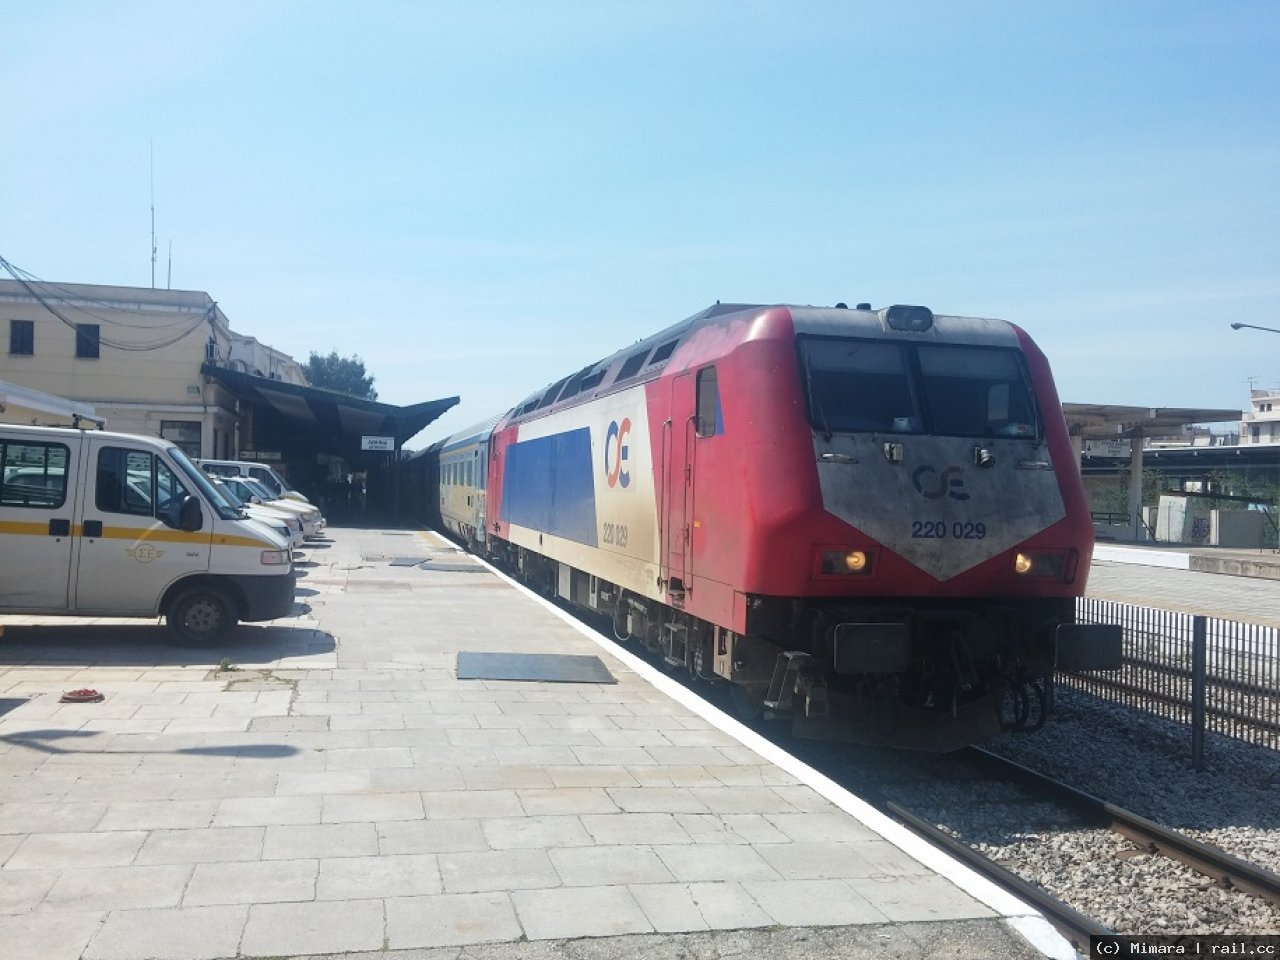 Train to Thessaloniki in Athen Larissa station